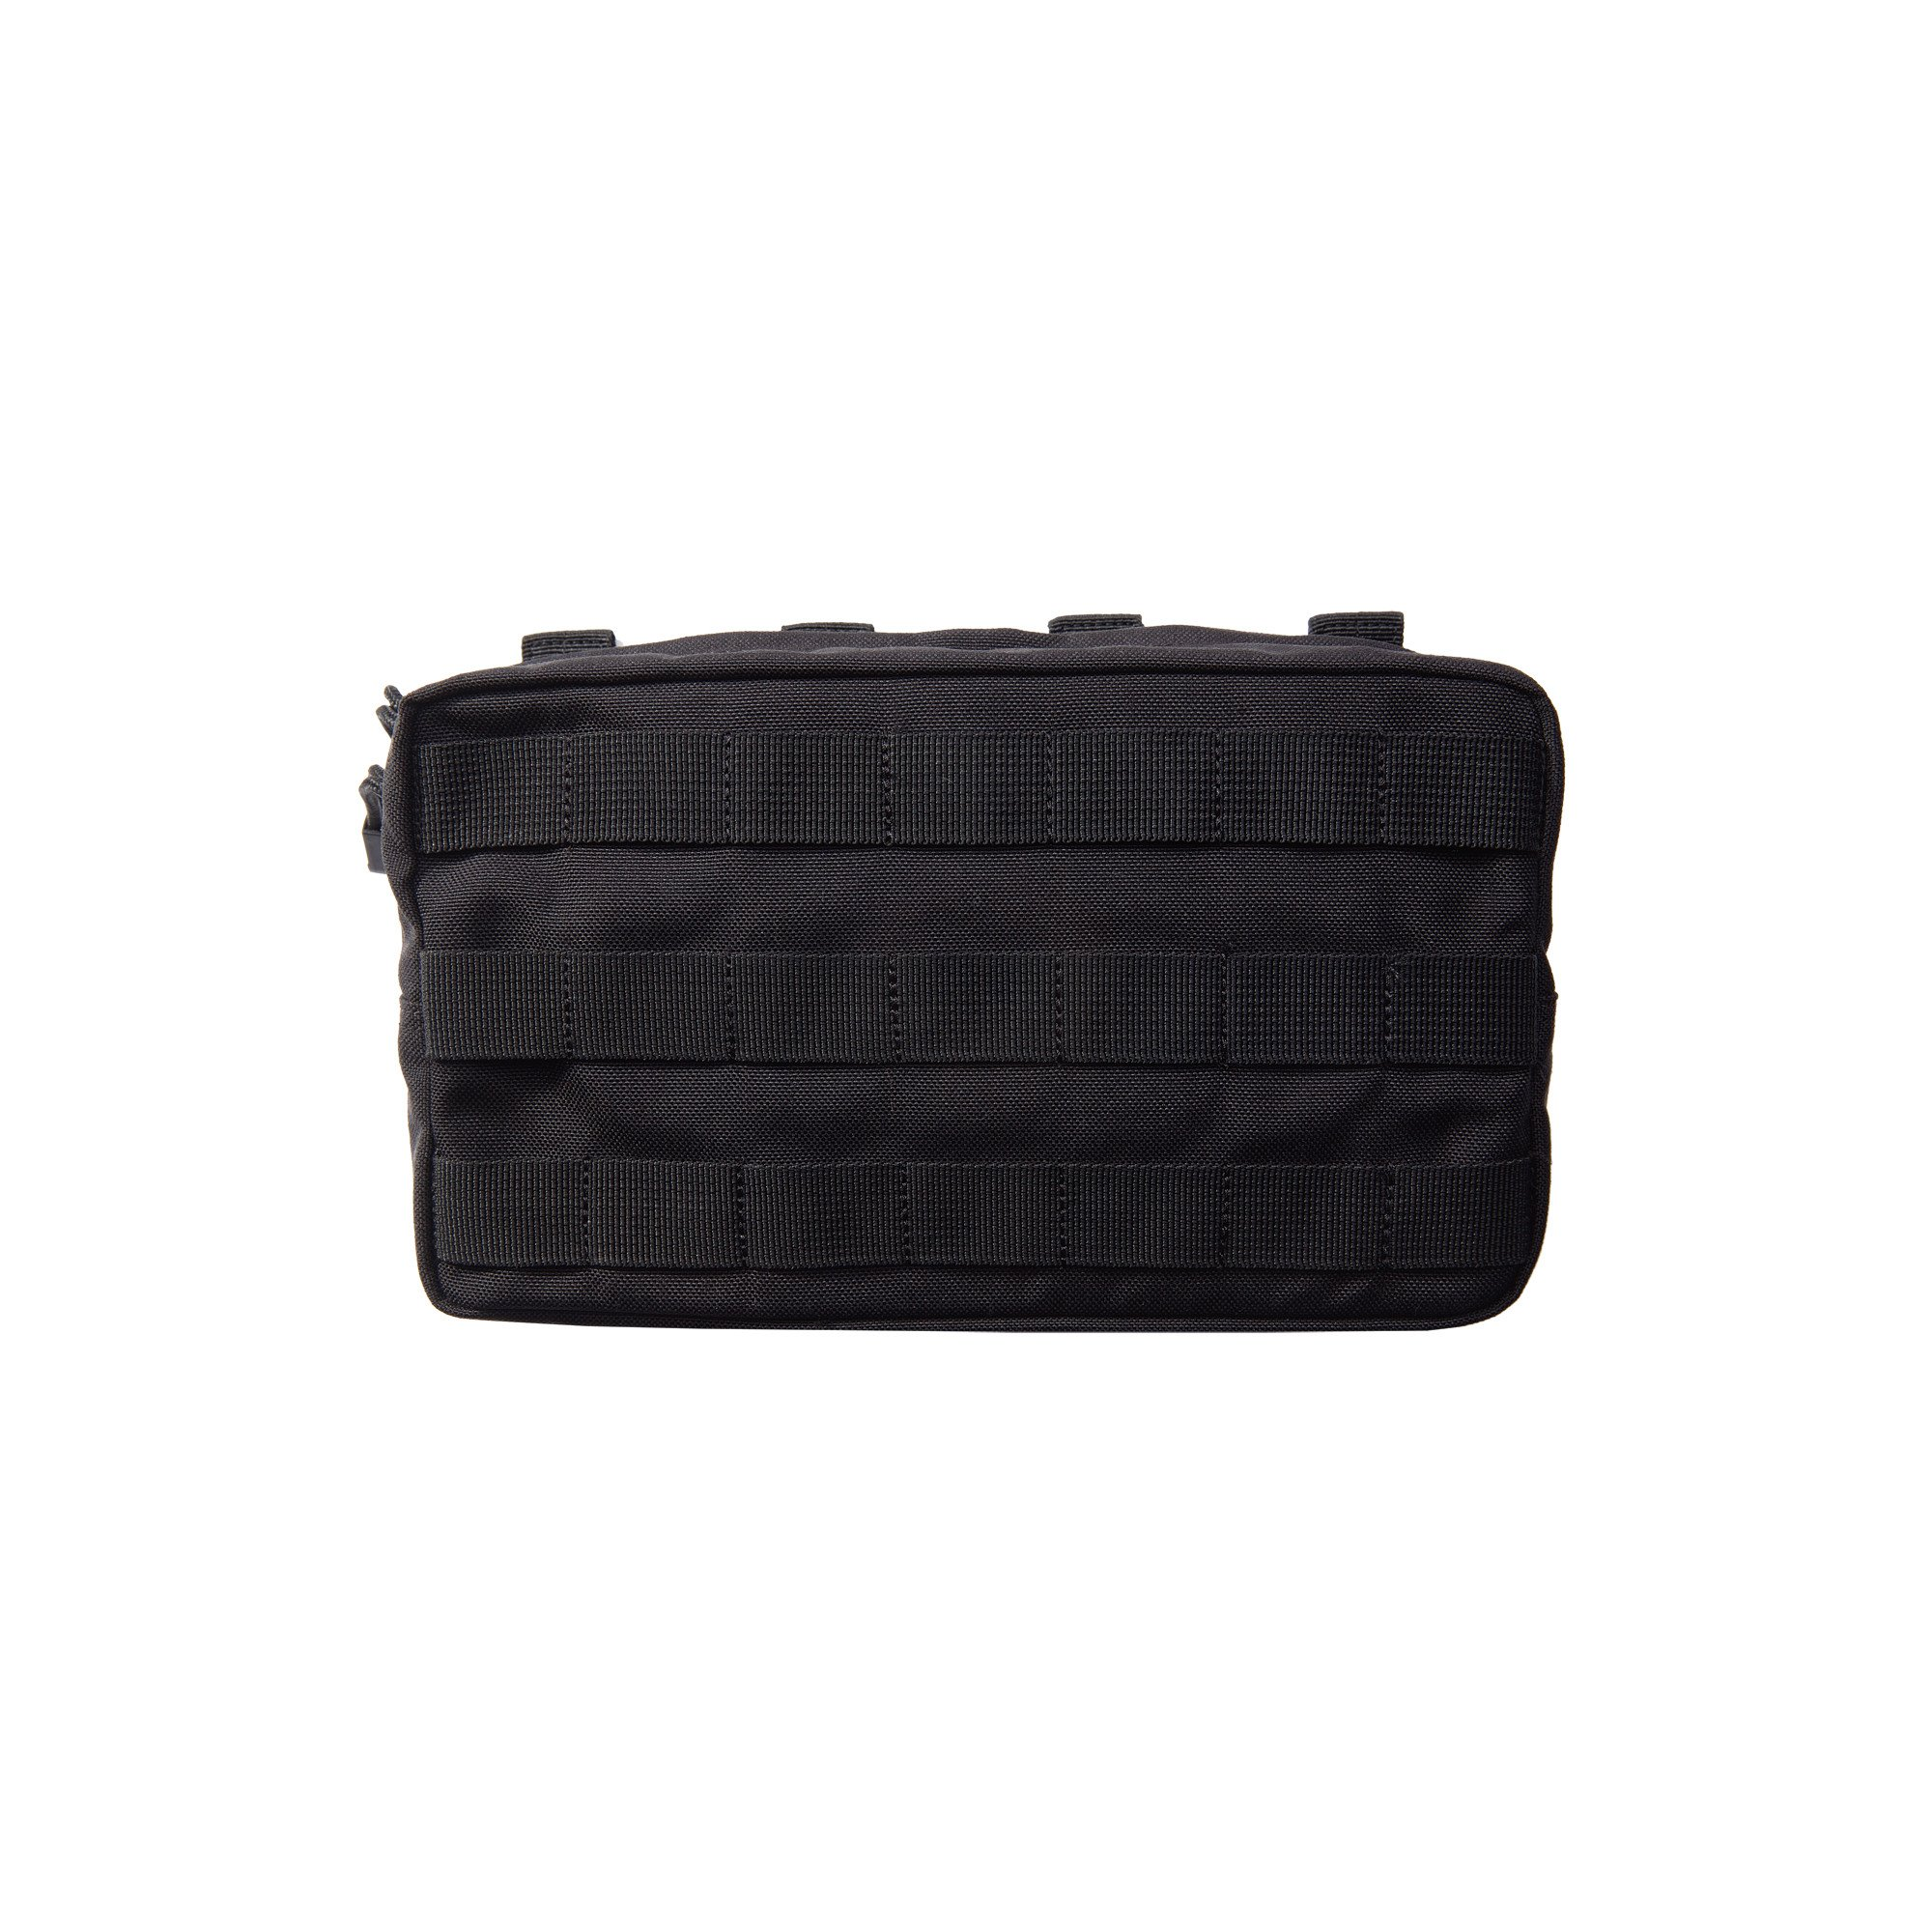 10 X 6 HORIZONTAL POUCH - Black